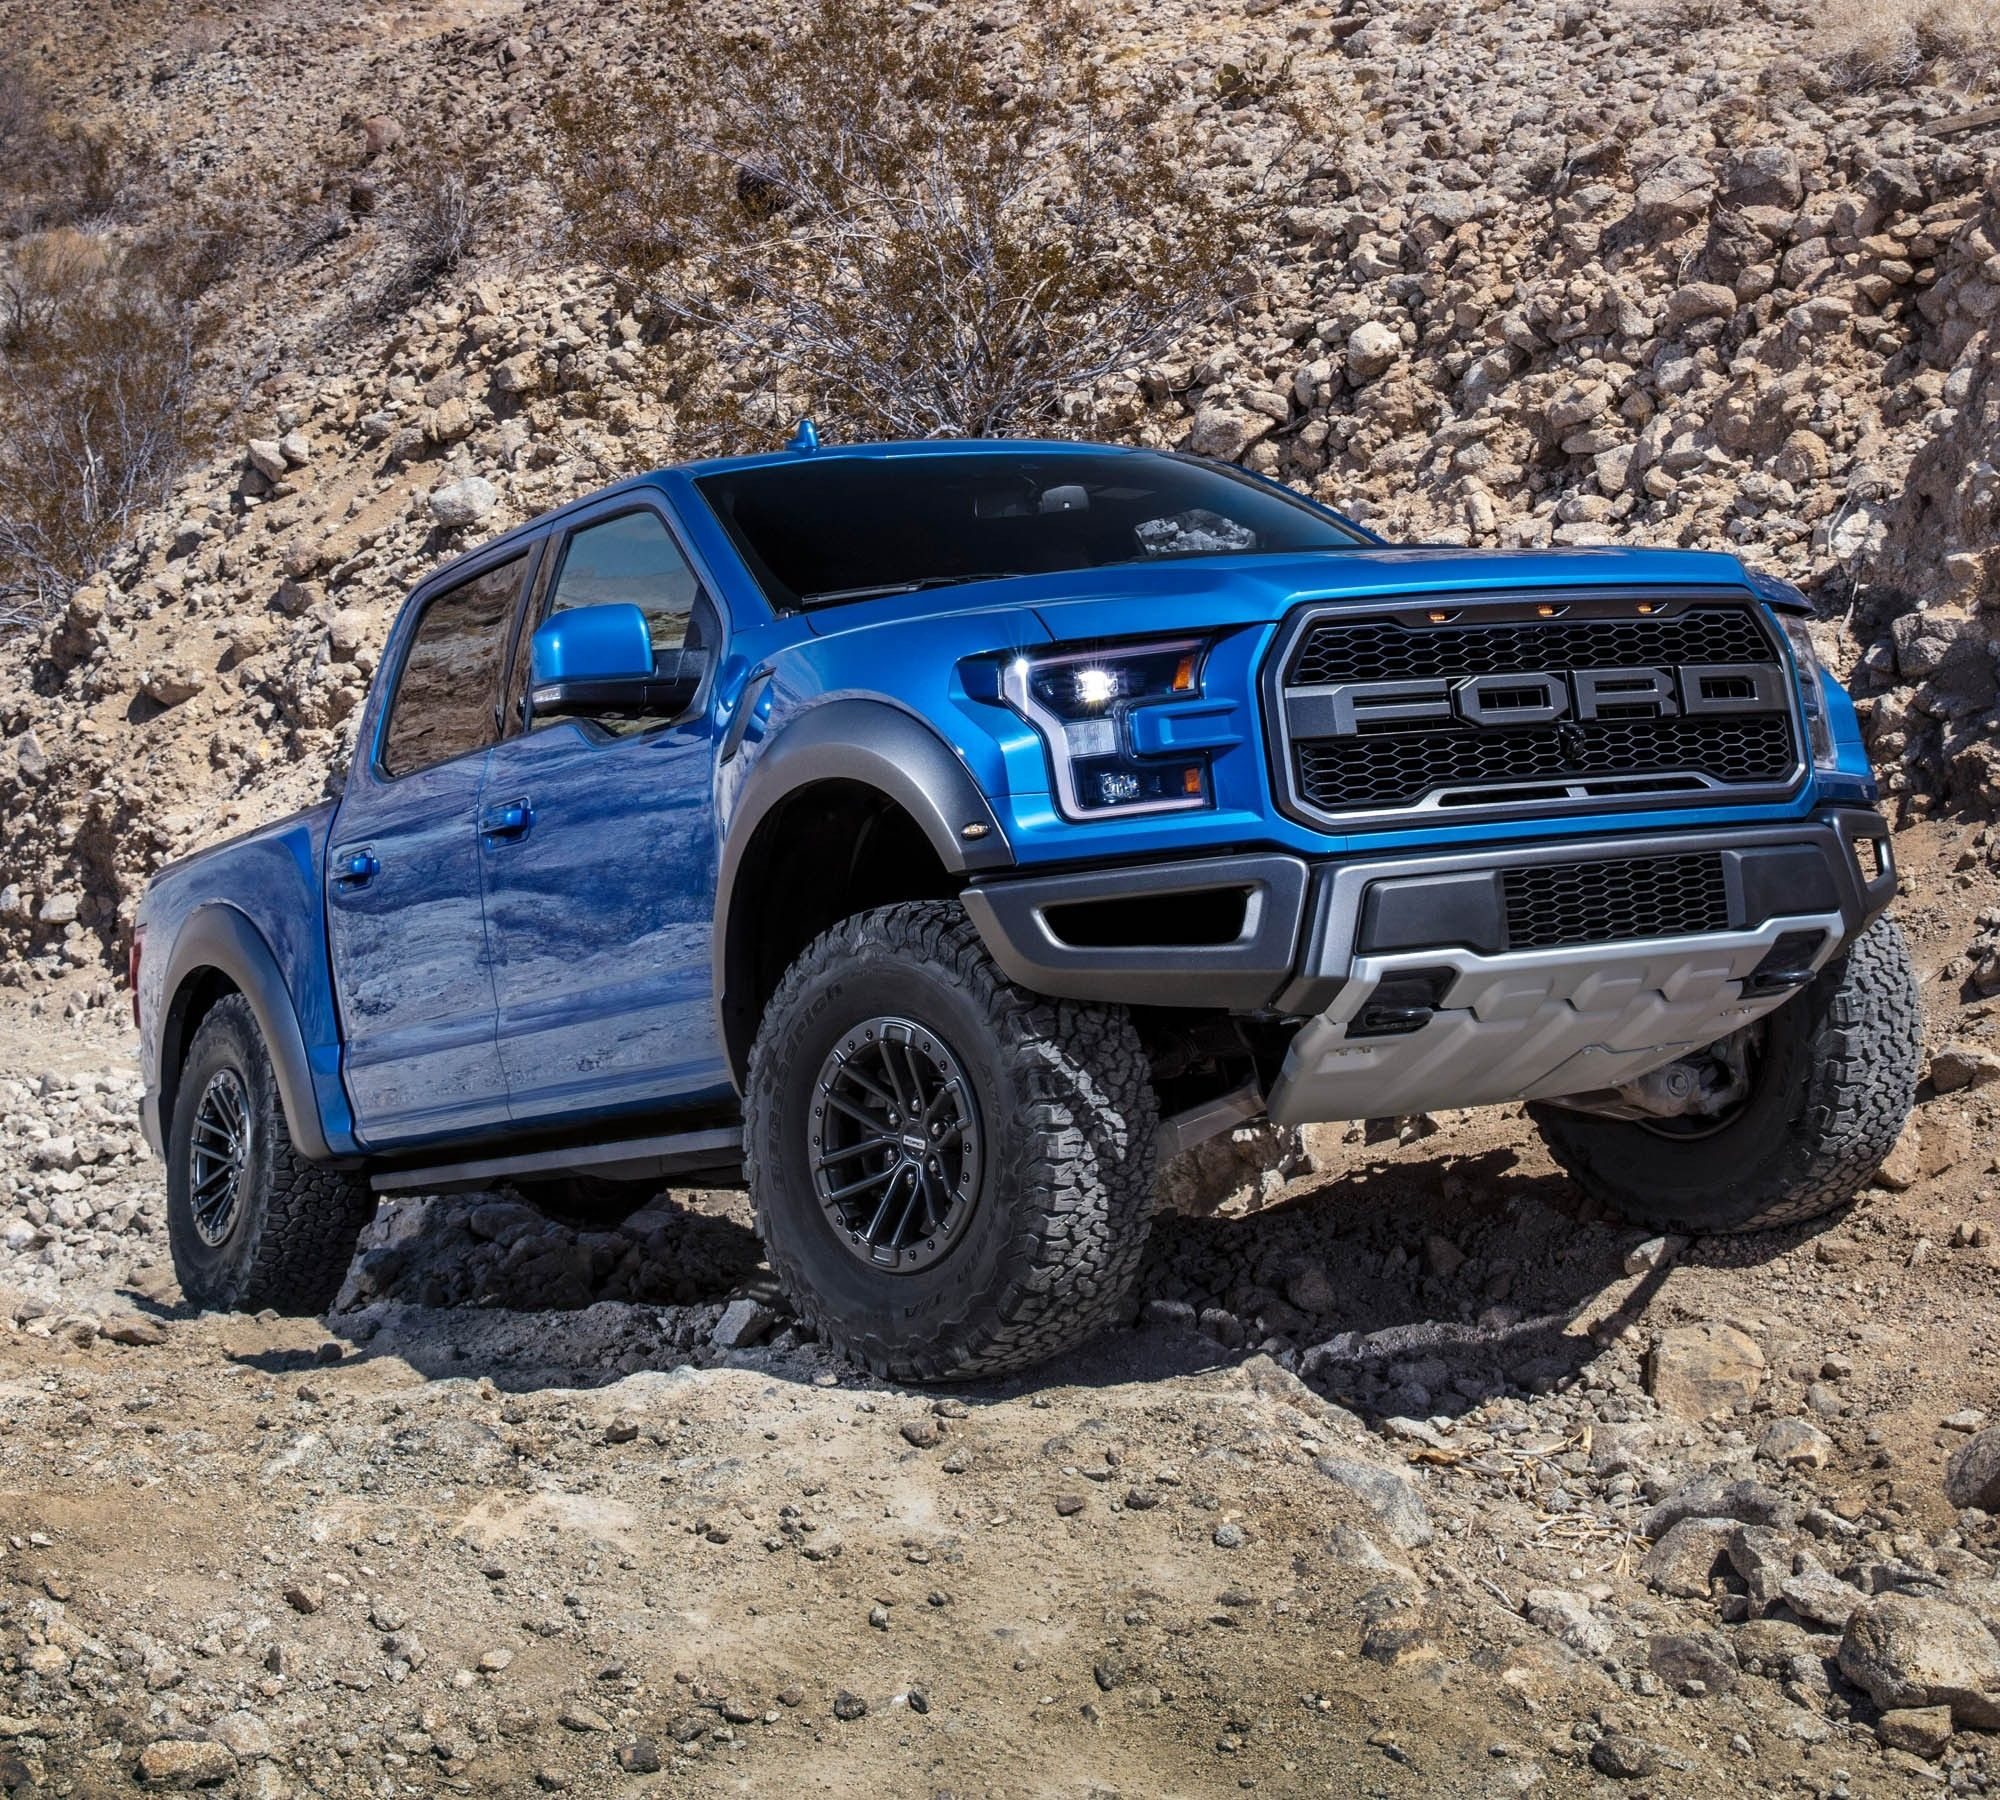 Ford F150 Raptor 2020 Review And Price In 2020 Ford Raptor Ford